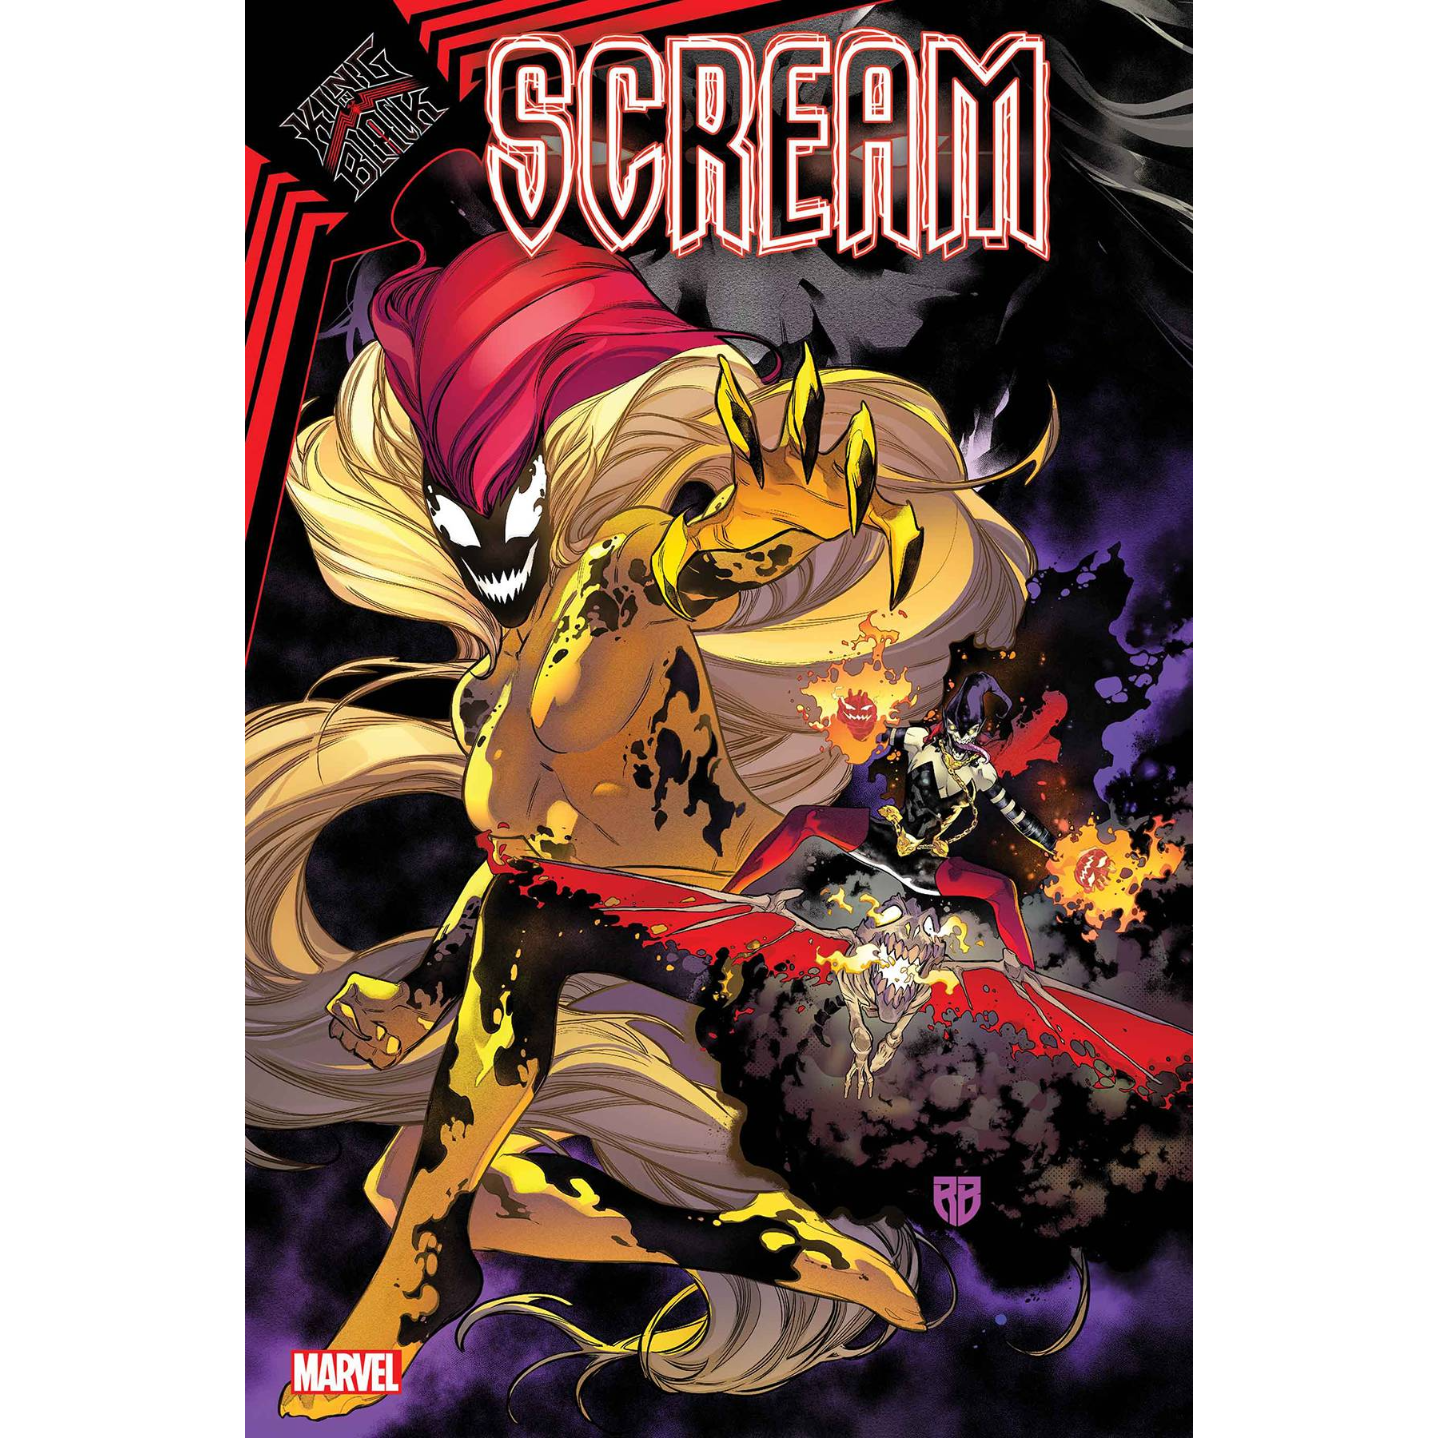 KING IN BLACK SCREAM #1